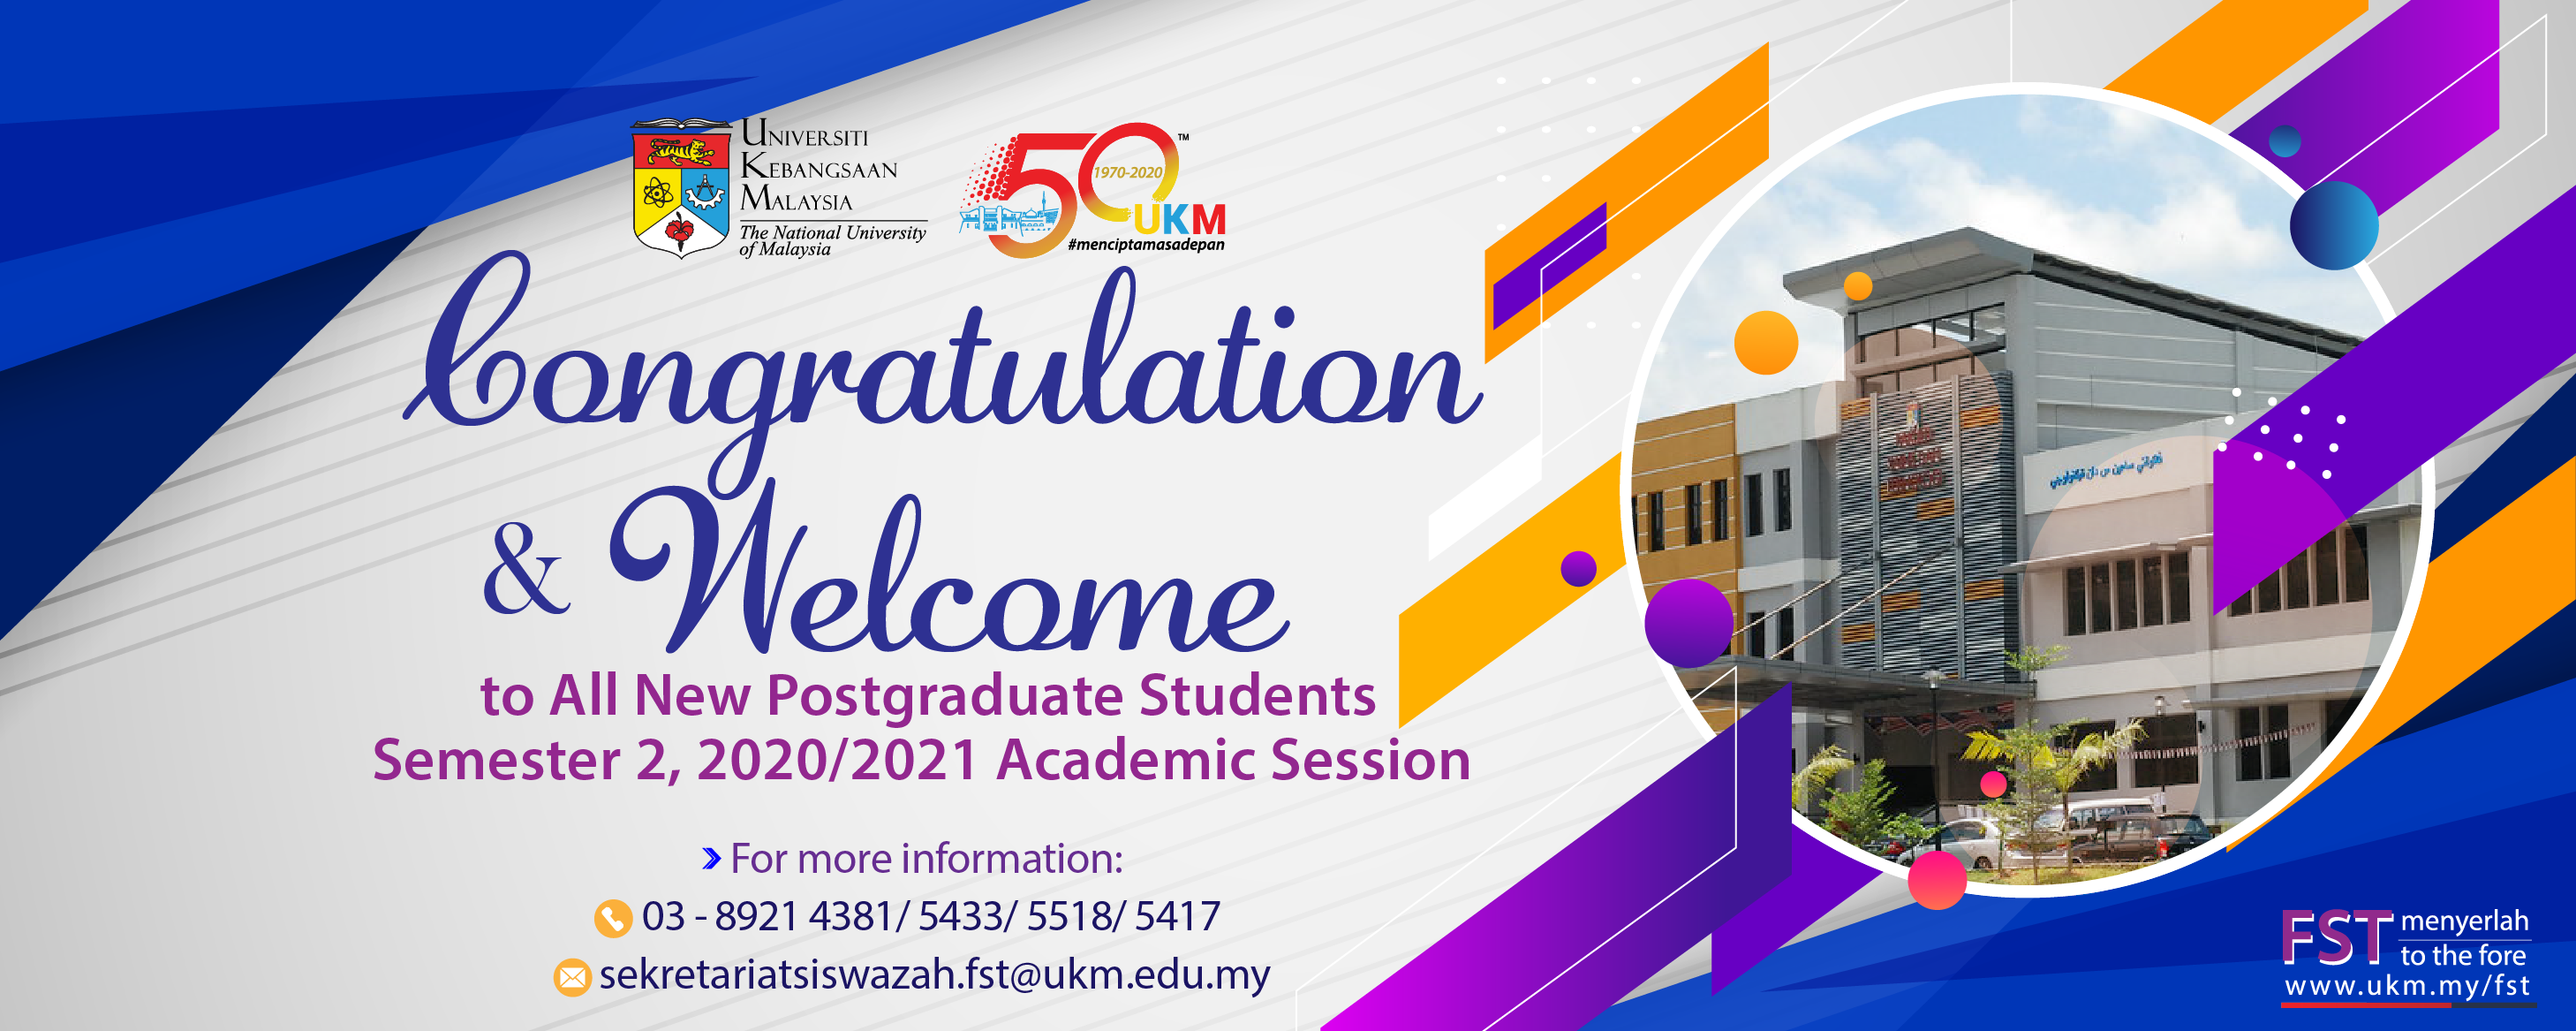 Welcome New Postgraduate Students